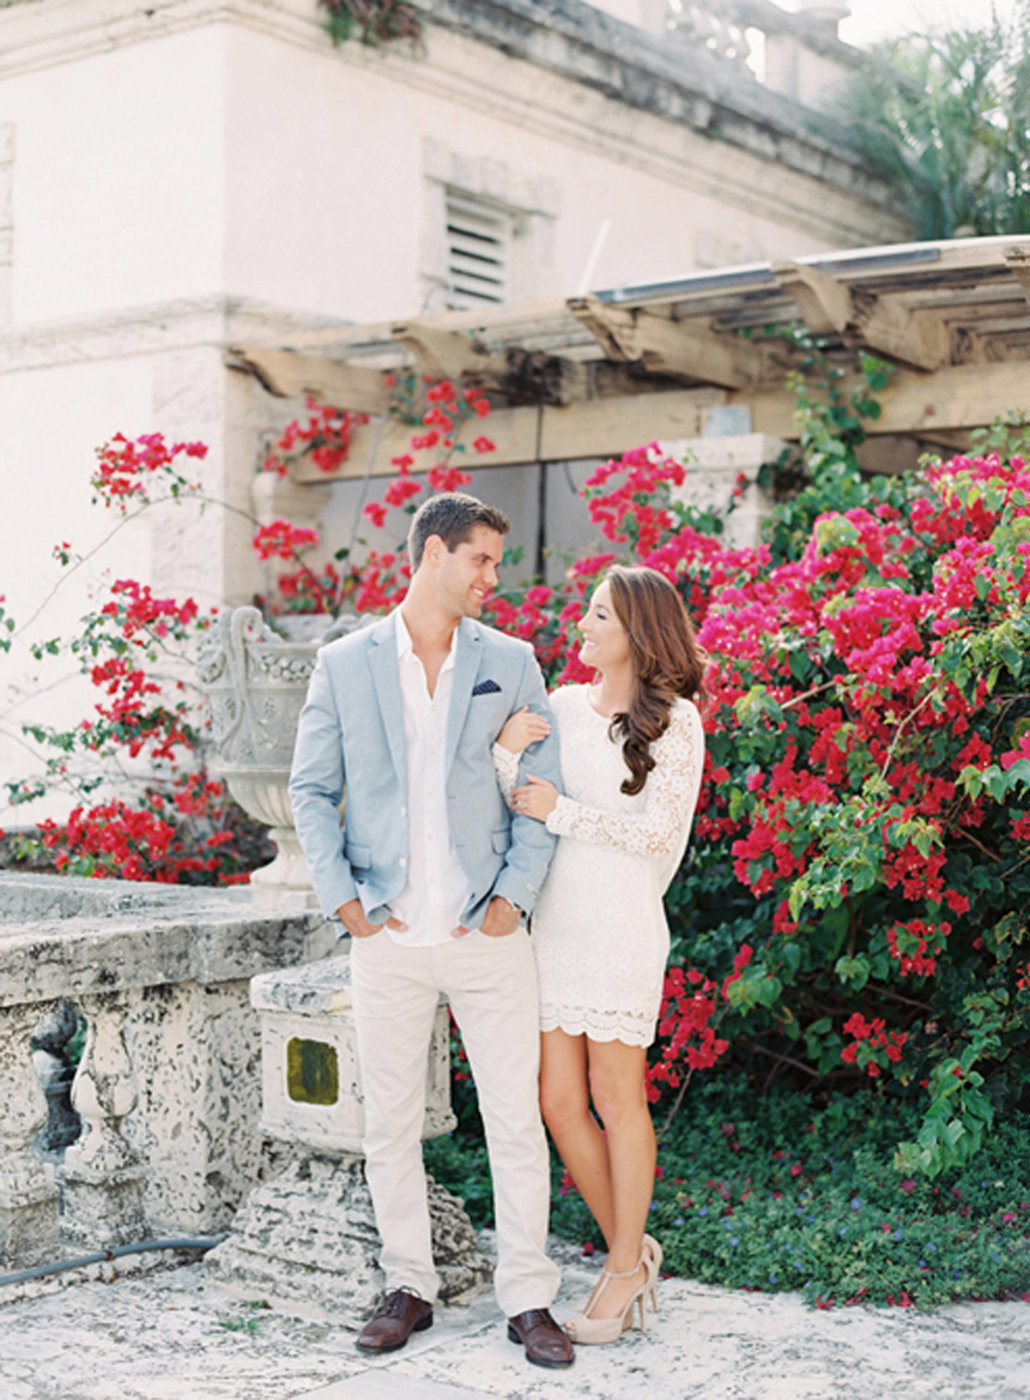 kayla_jon_vizcaya_sailboat_engagement_melanie_gabrielle_photography_02